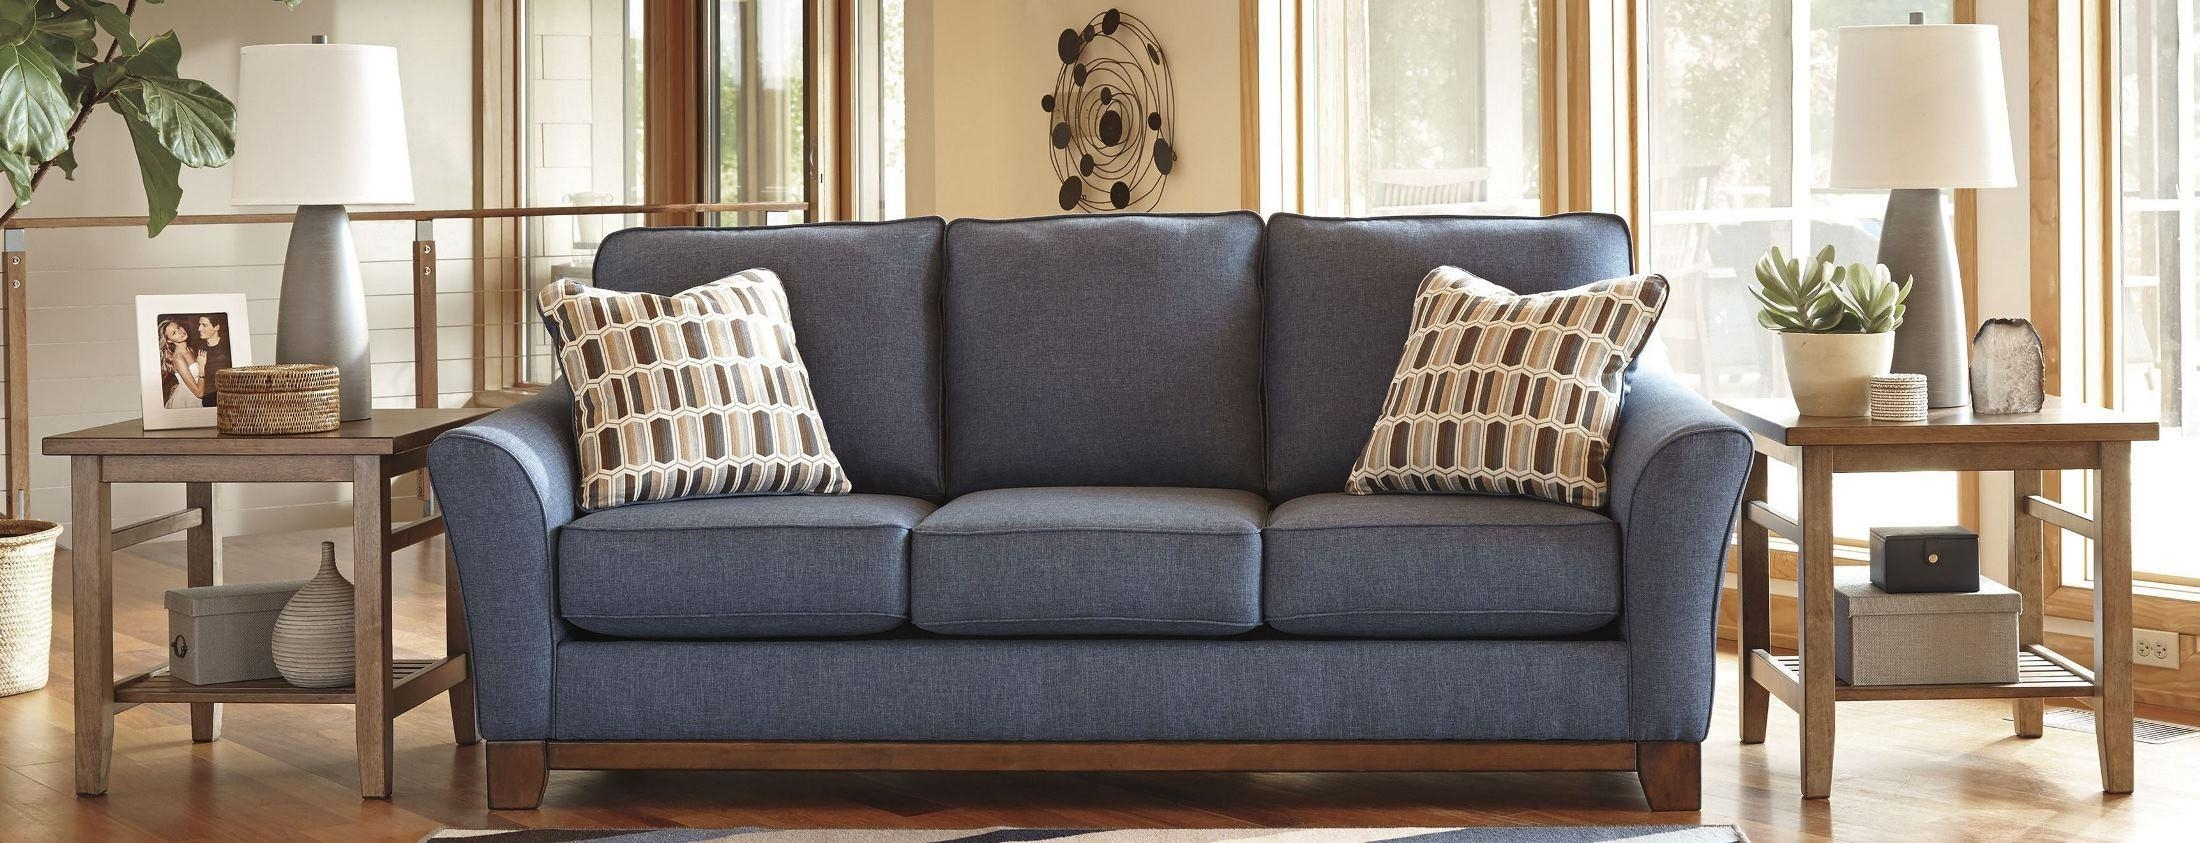 Janley Denim Sofa With Regard To Denim Sofas And Loveseats (Image 11 of 12)